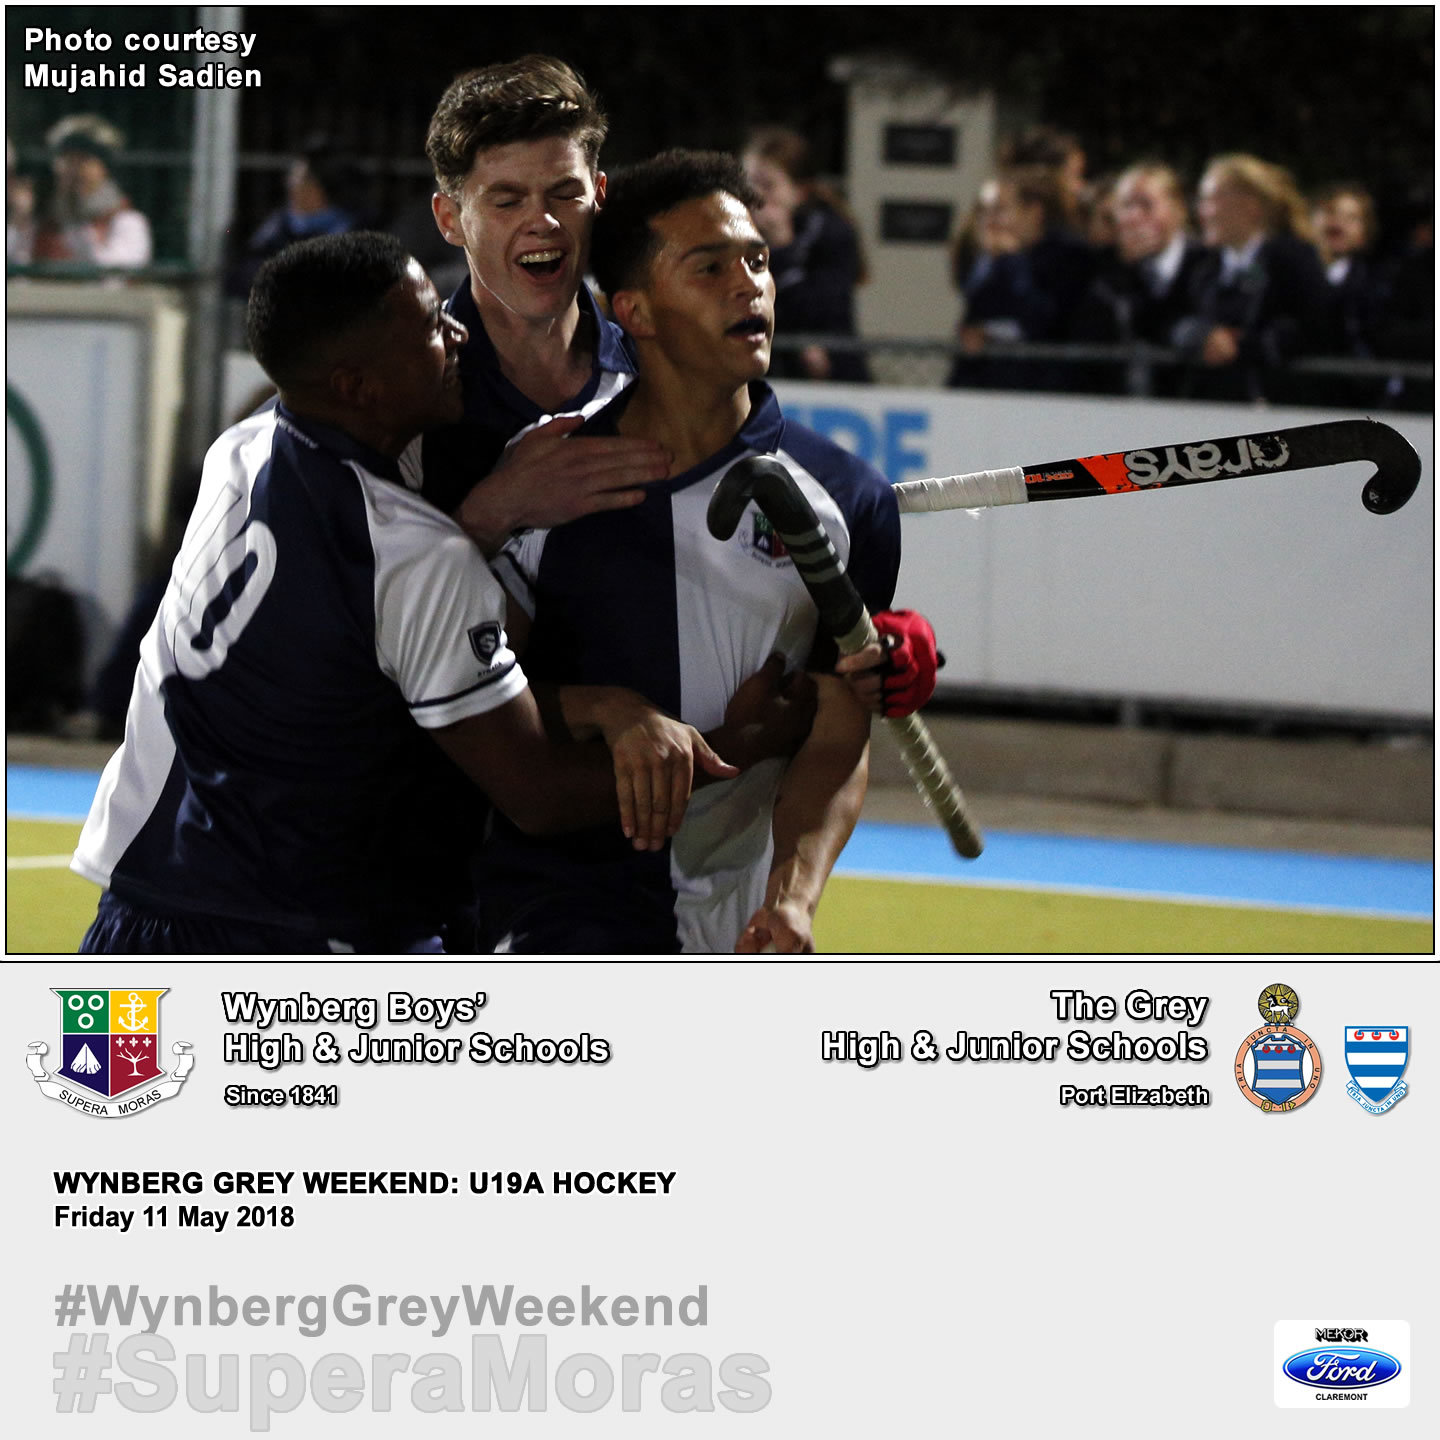 1st XI vs Grey High, Album II, Friday 11 May 2018